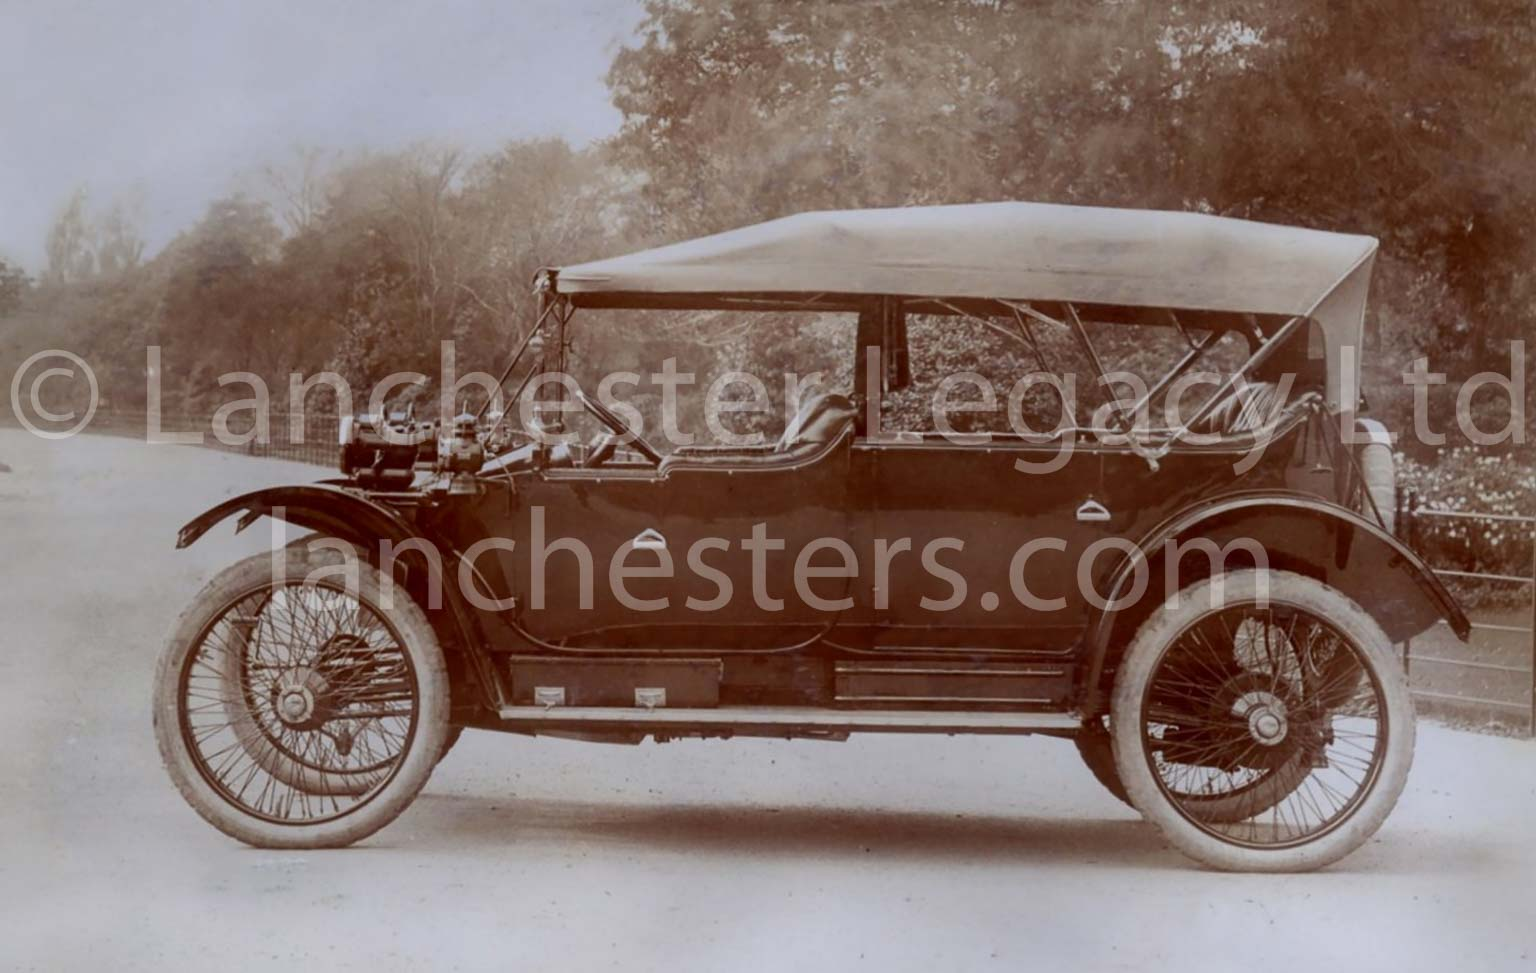 Lanchester 25hp 5-seat Phaeton with Cape Cart hood in Small Heath Park, Birmingham